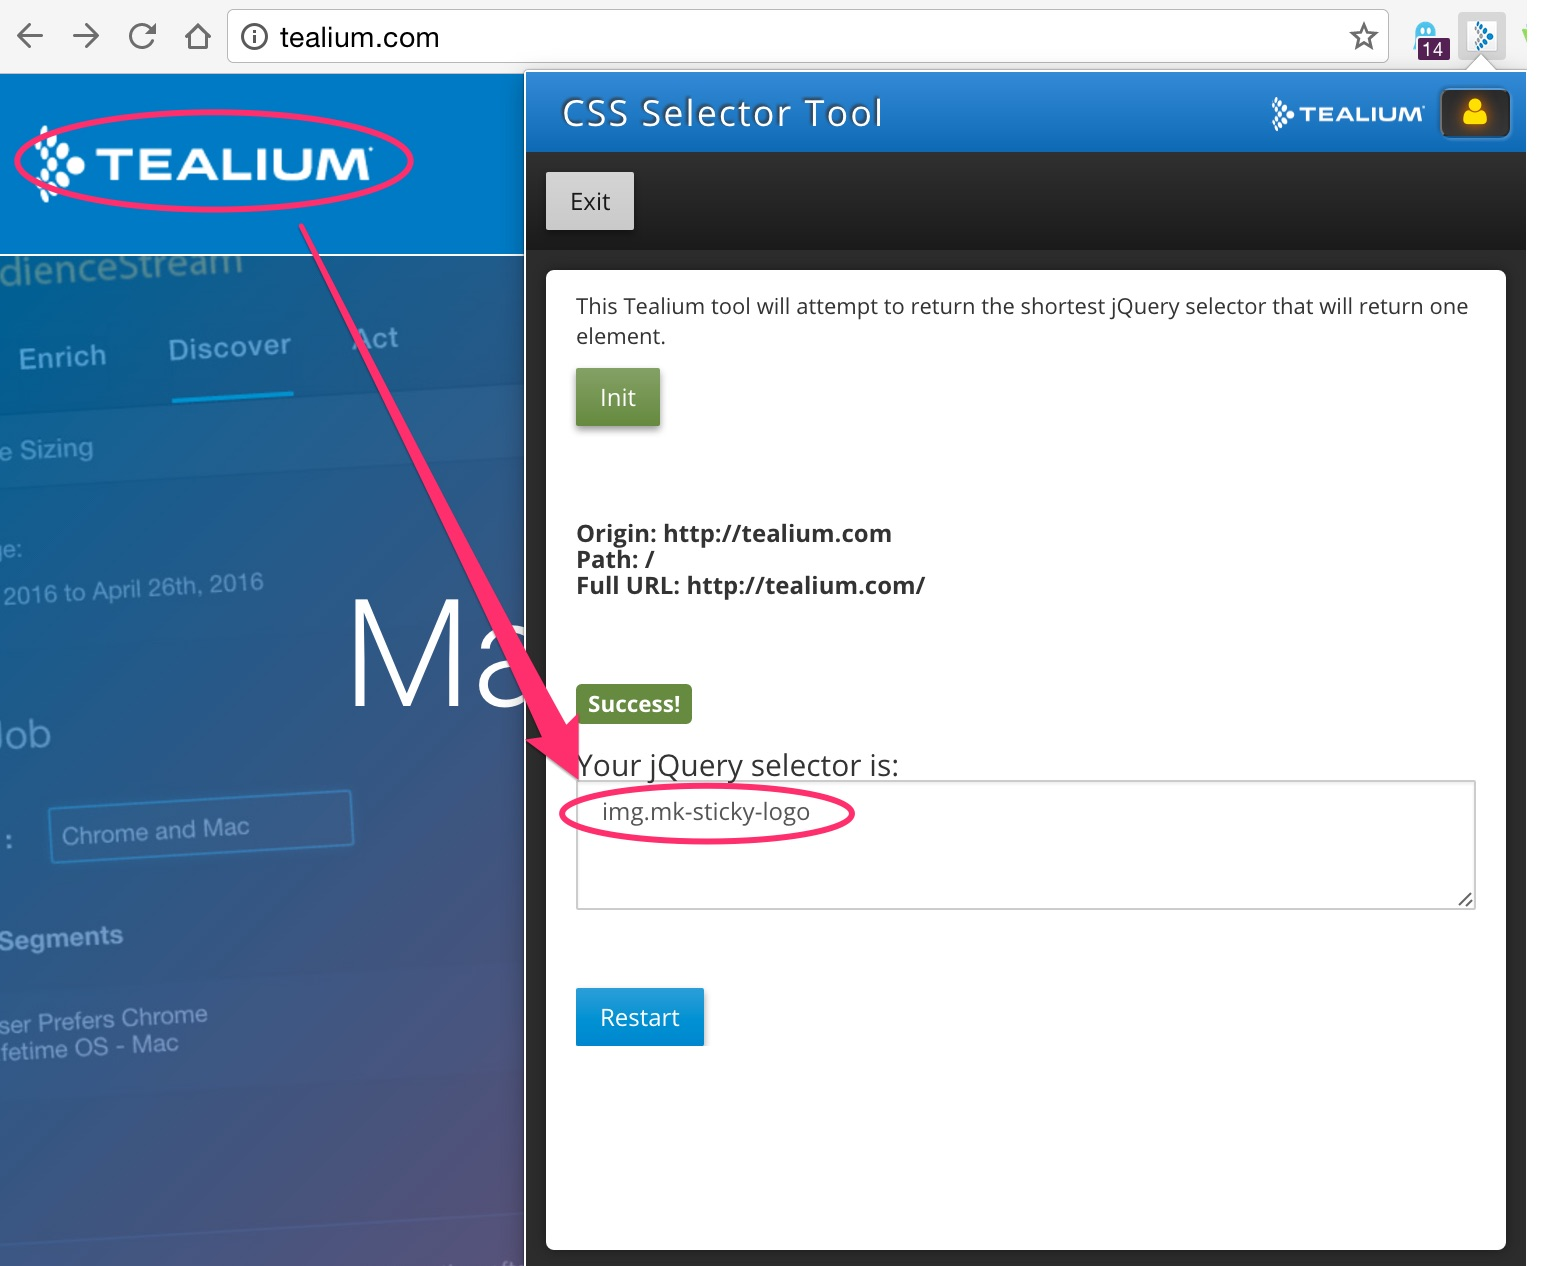 CSS Selector Tool (for use with jQuery Extensions) - Tealium